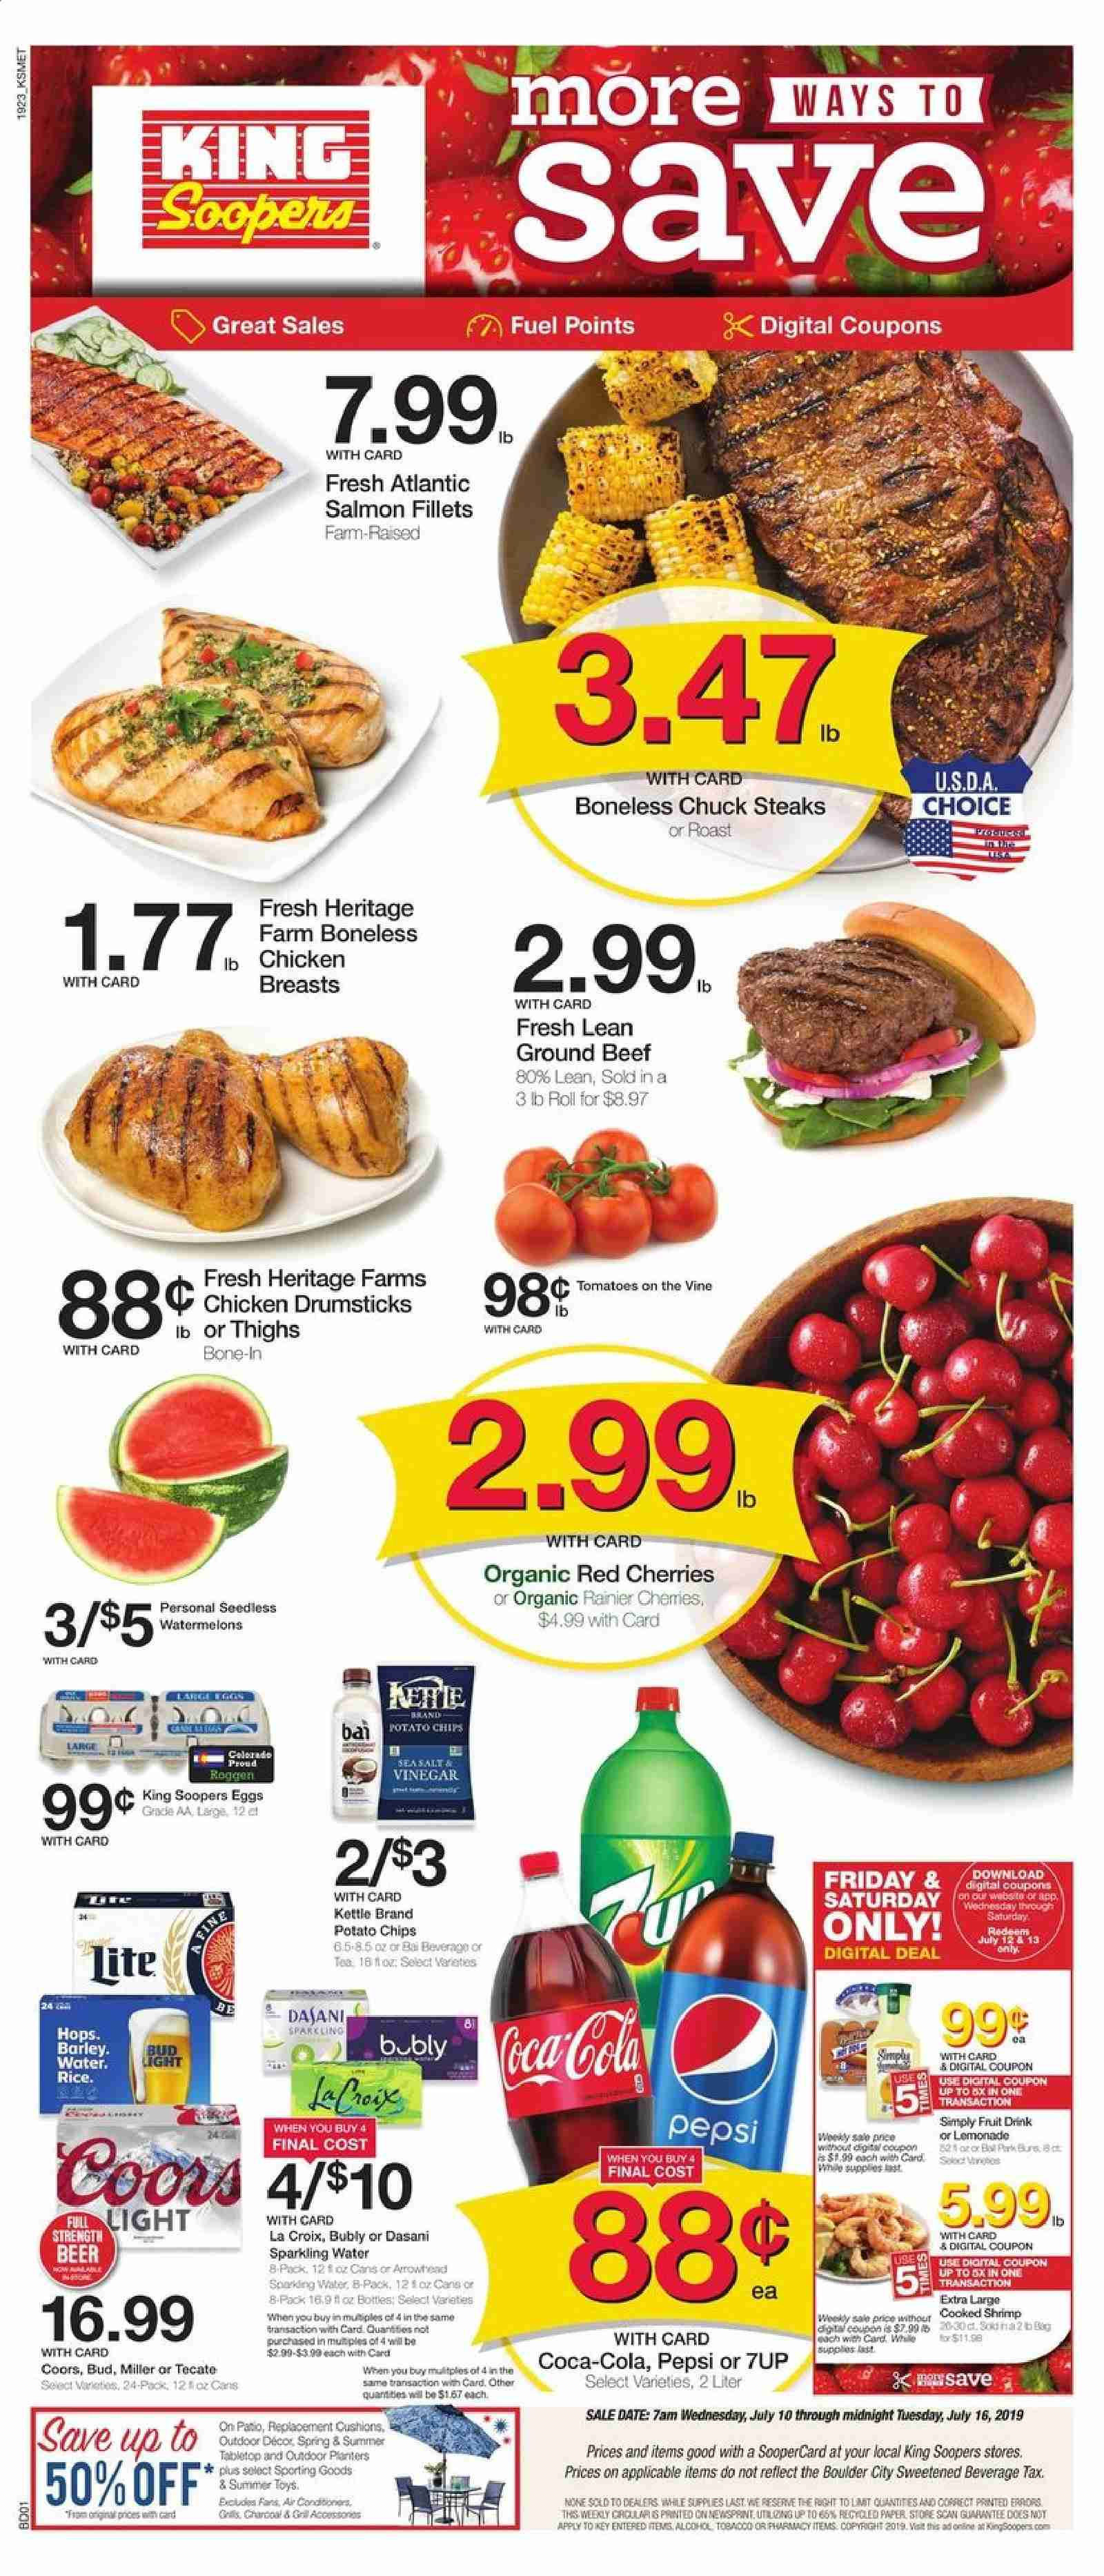 King Soopers Flyer  - 07.10.2019 - 07.16.2019. Page 1.